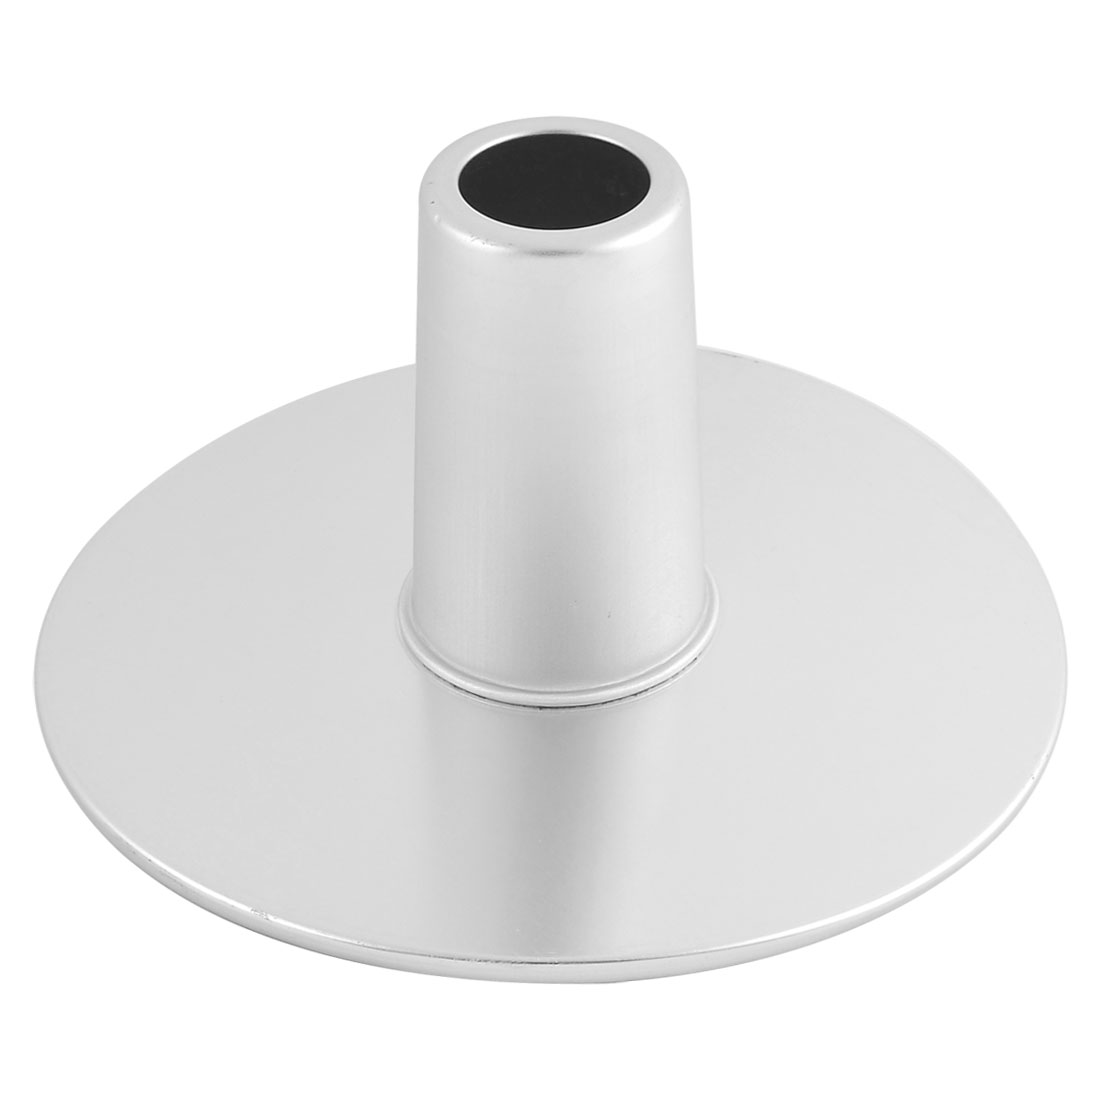 Bakery Kitchen Aluminum Chimney Shaped Rotating Cake Stand Mold Silver Tone